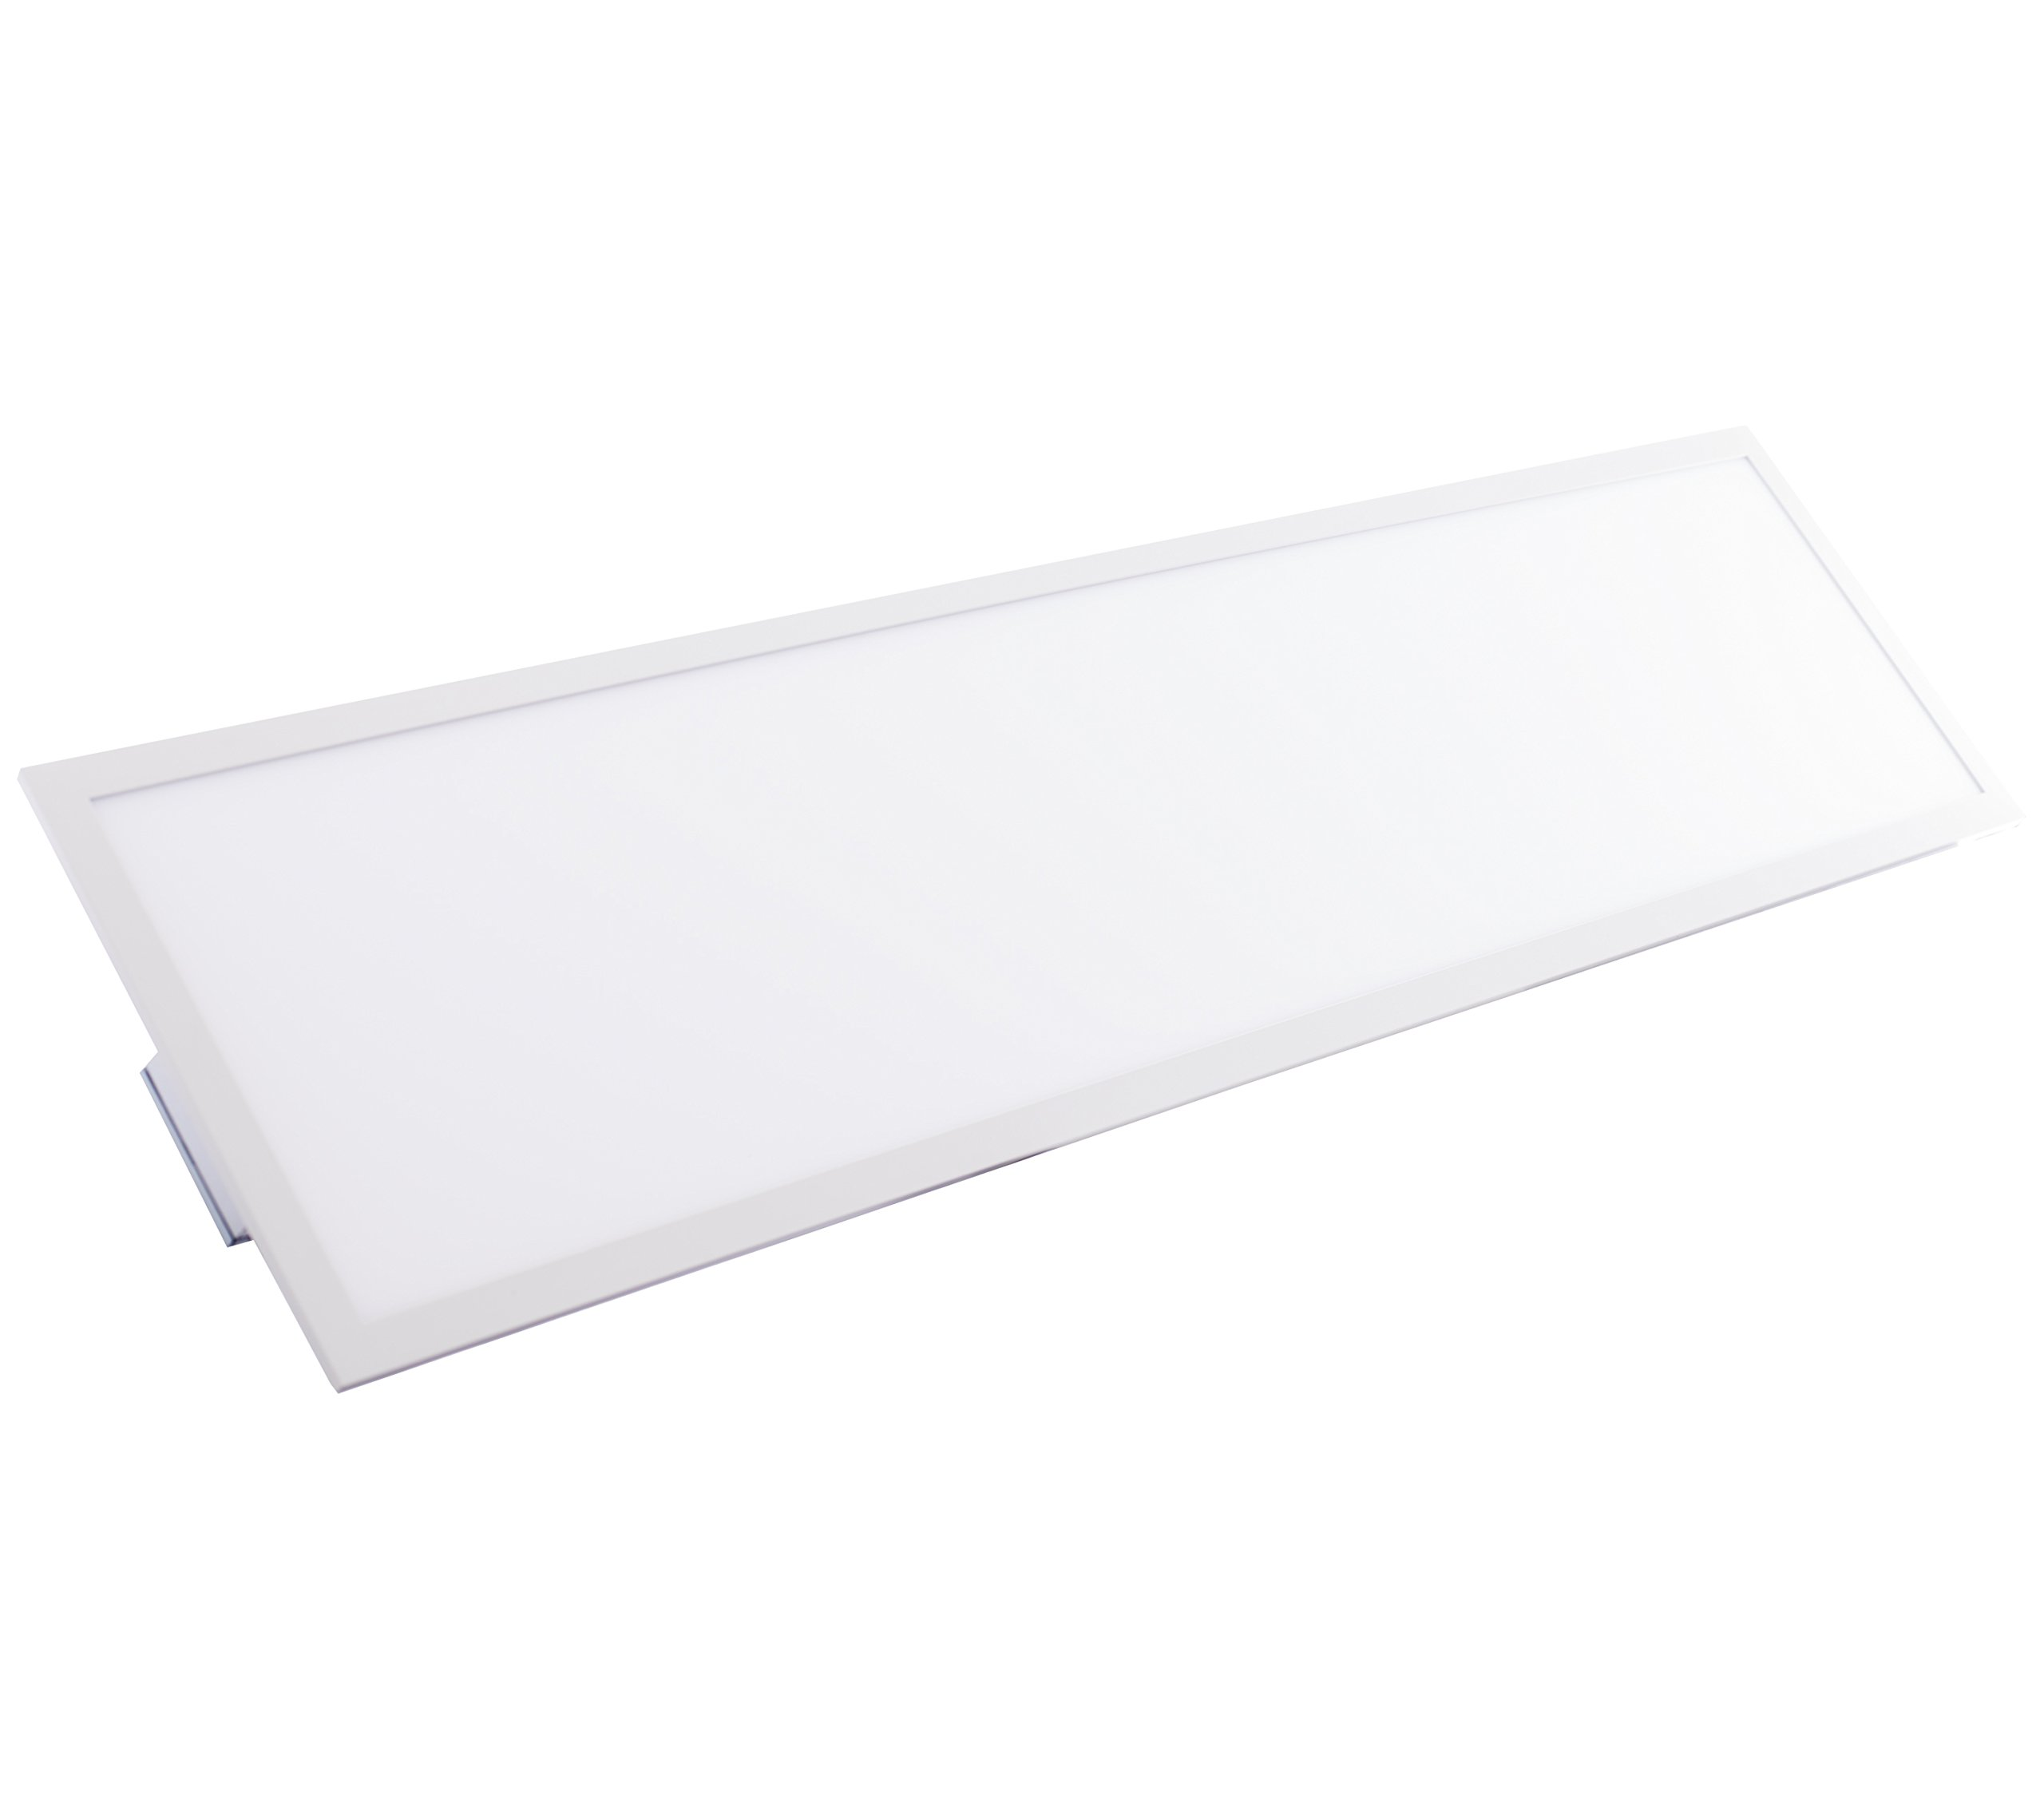 Westgate Lighting LED Panel Lights-Preinstalled Earthquake Hooks Panel Light-Dimmable Commercial Lighting-1 × 4 LED Panel Light-5 Year Unlimited Warranty (1X4, 5000K Cool White) by Westgate